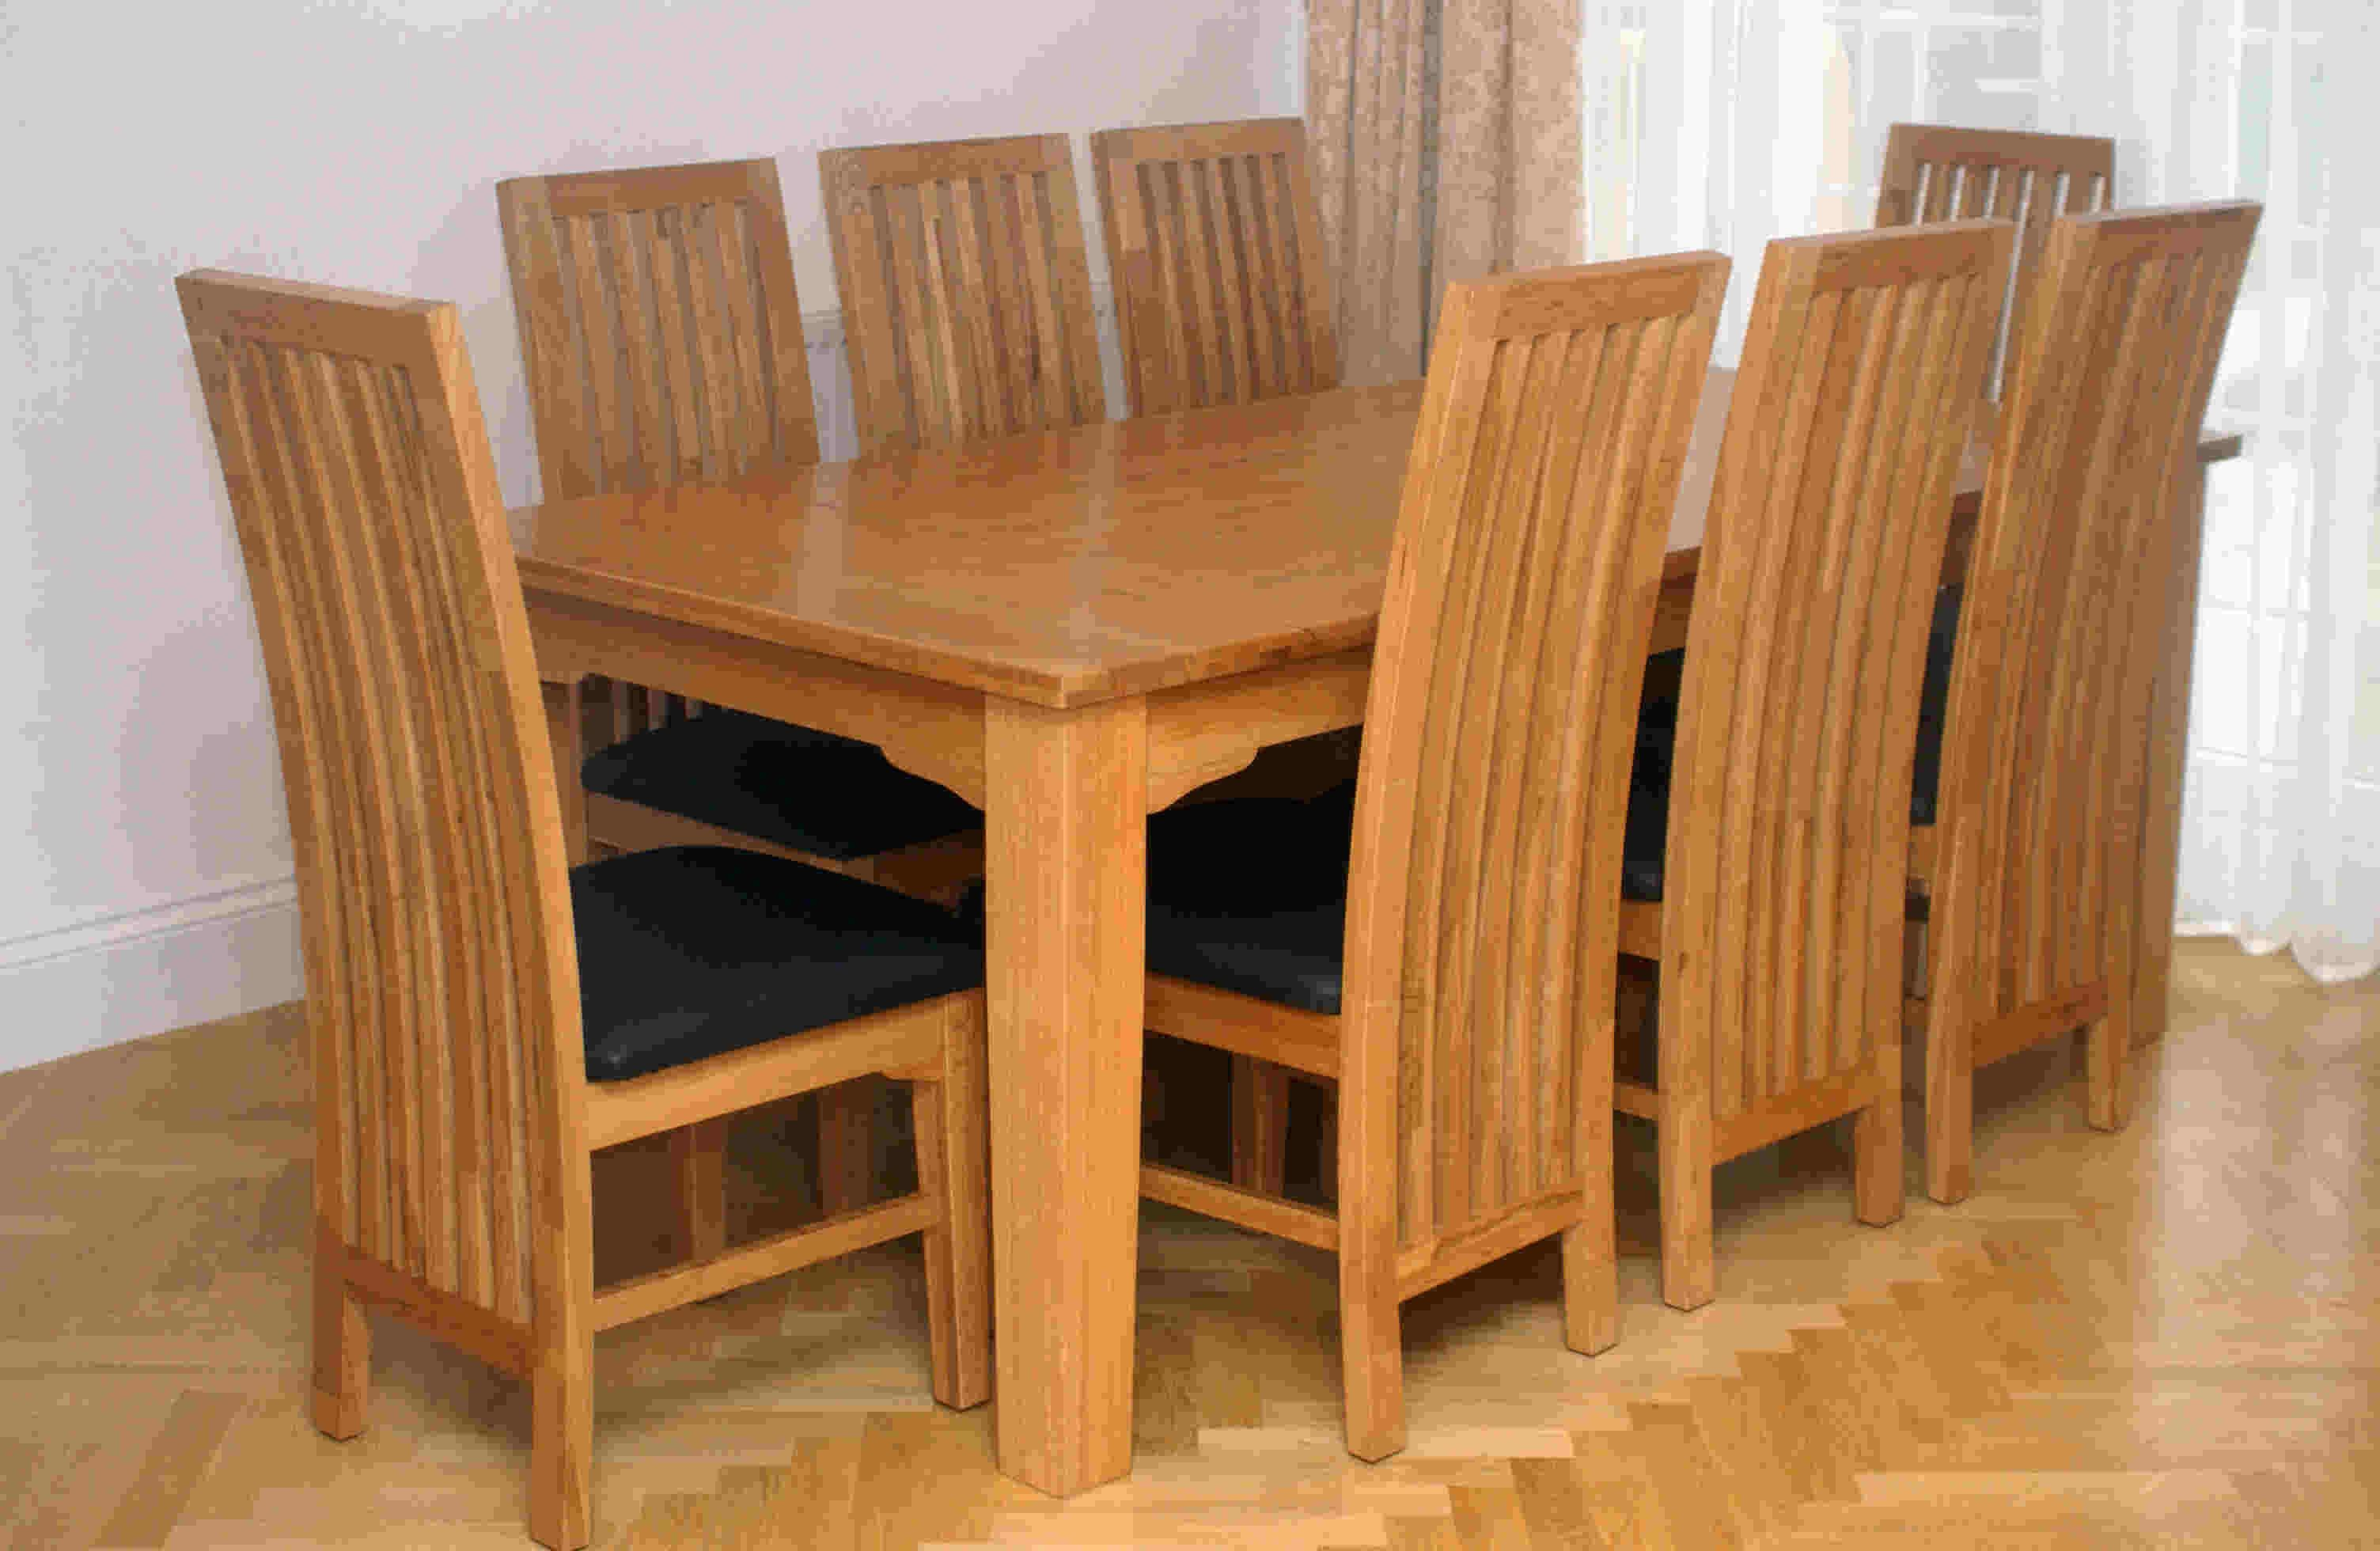 Oak Dining Room Furniture Sturdy Building May Take Years Of Wear And Tear Getting Older Items Be Easily Sanded As Well Re Stained Or Painted